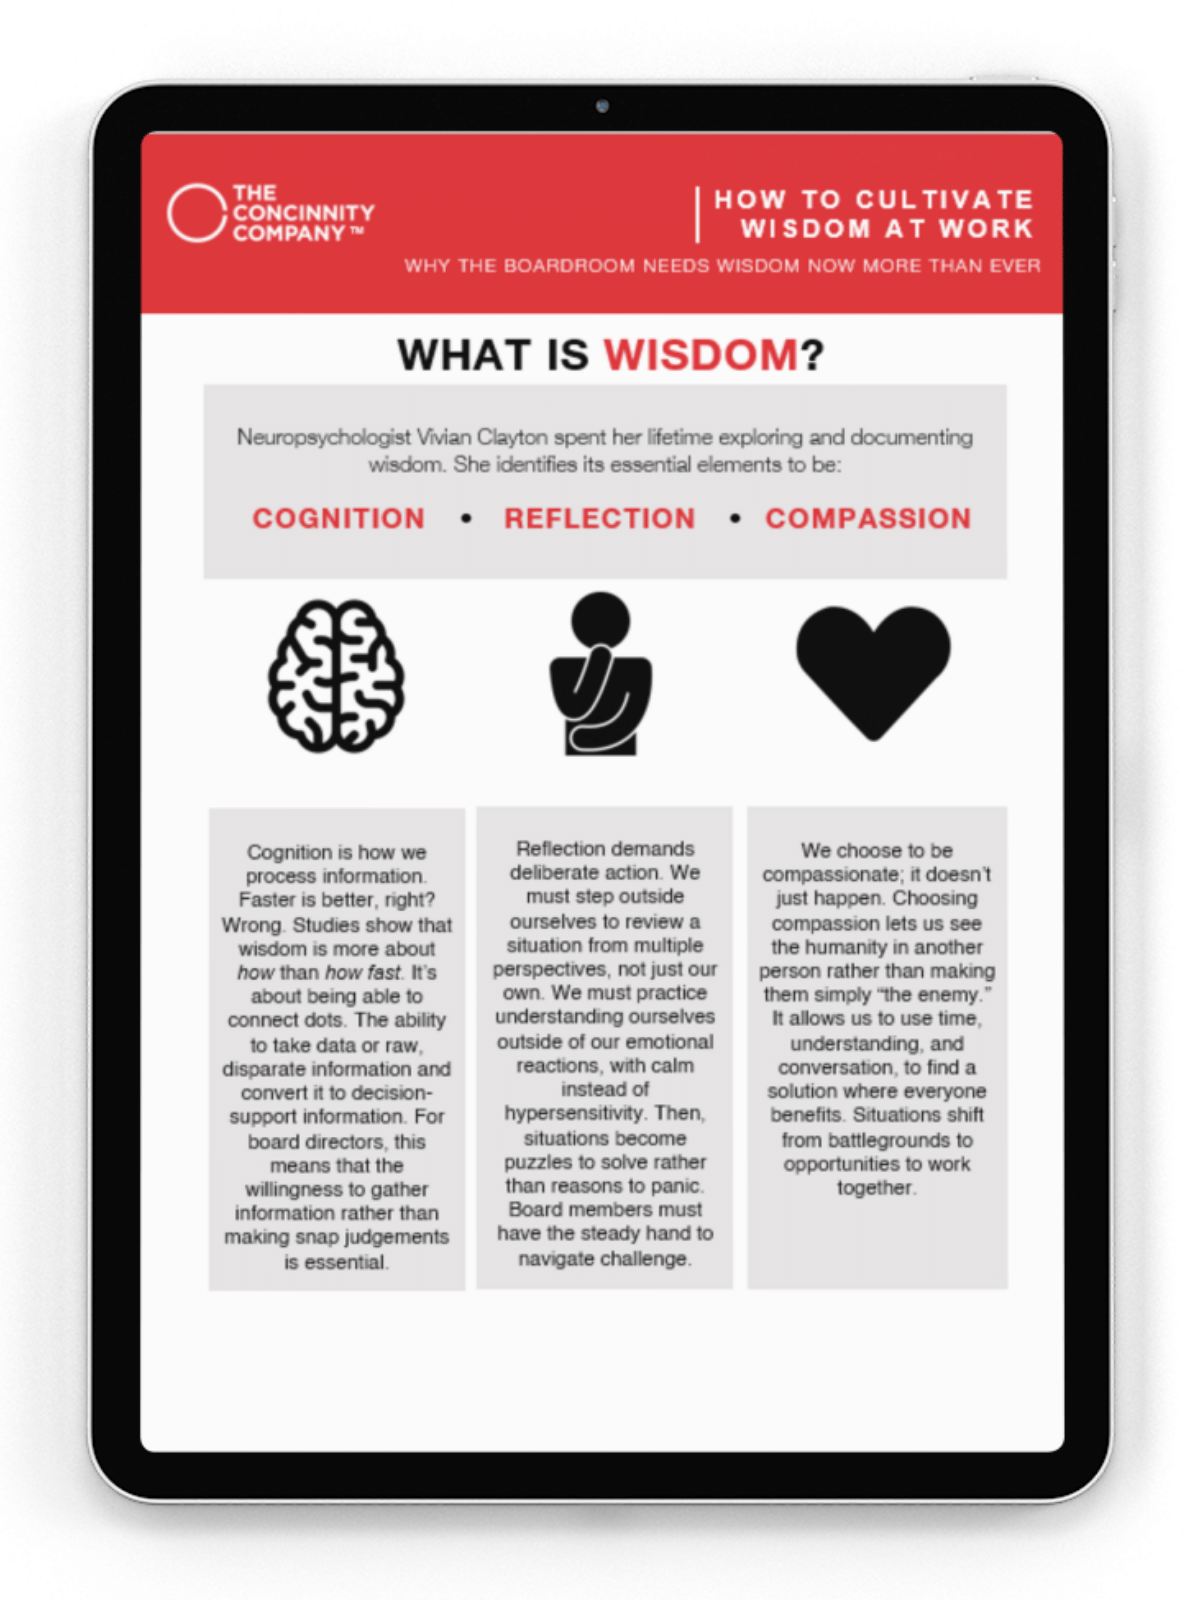 Does Your Boardroom Cultivate Wisdom?   We created this guide with 8 simple thoughts from analyzing Neuropsychologist's Vivian Clayton's 3 essential elements of wisdom:  • Cognition  • Reflection  •Compassion